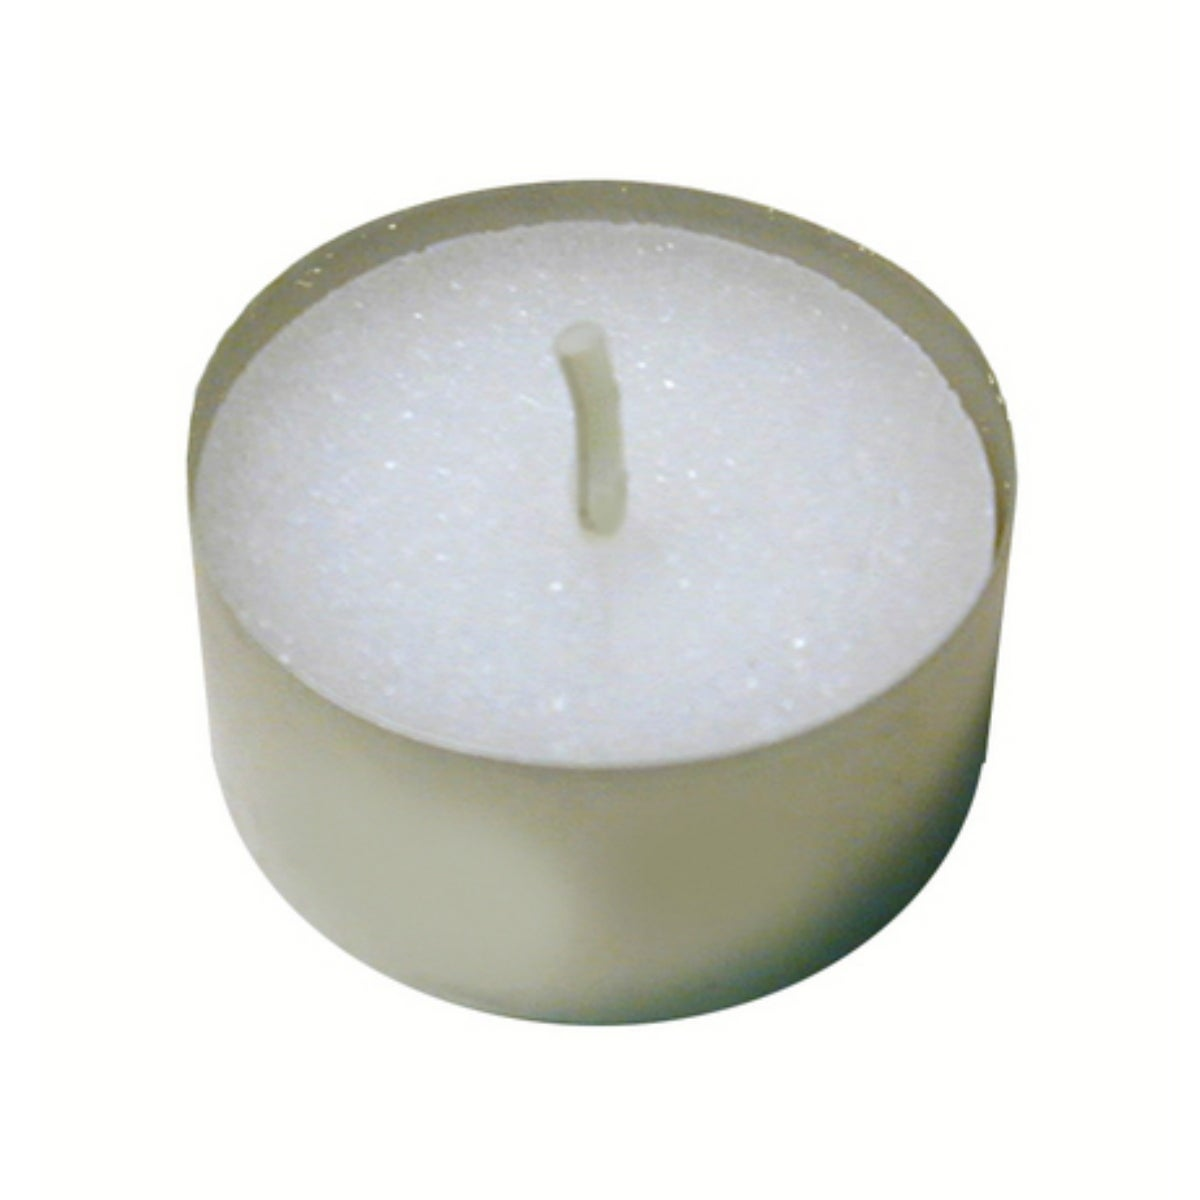 Candle-Lite 1261595 Unscented Tea Light, White, Bag of 50 - White - Thumbnail 0